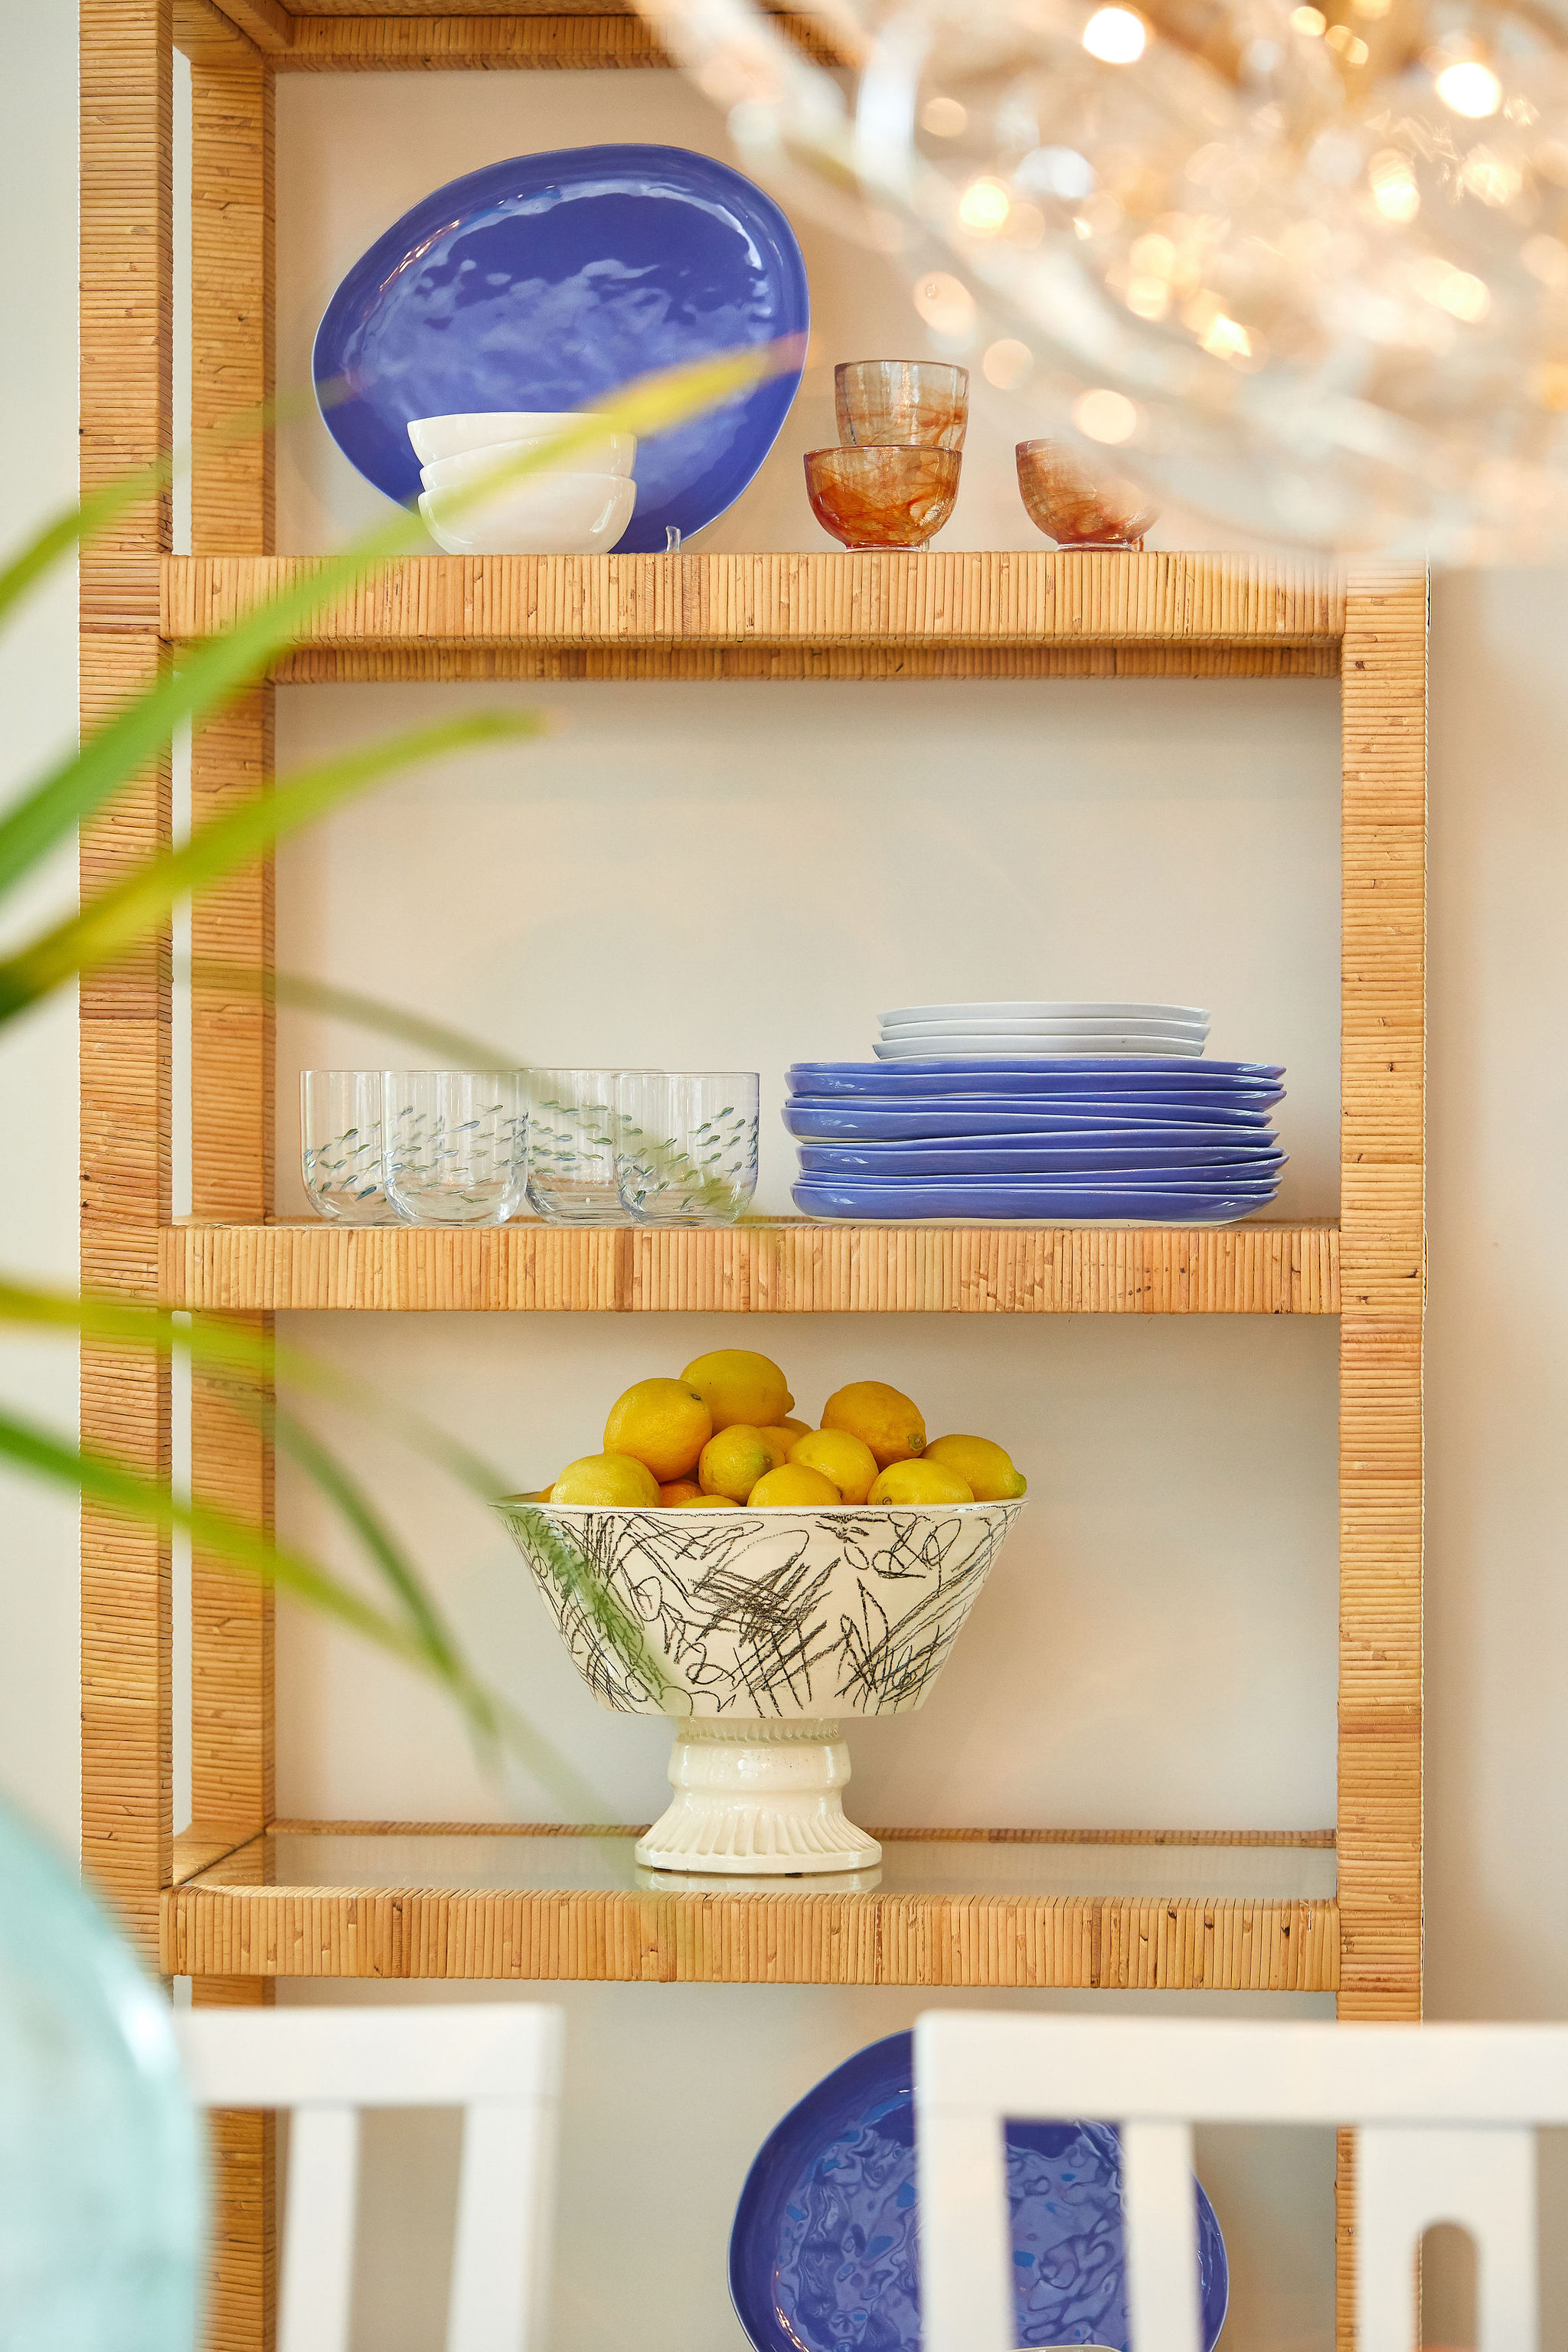 Image of an etagere with lemons and plates